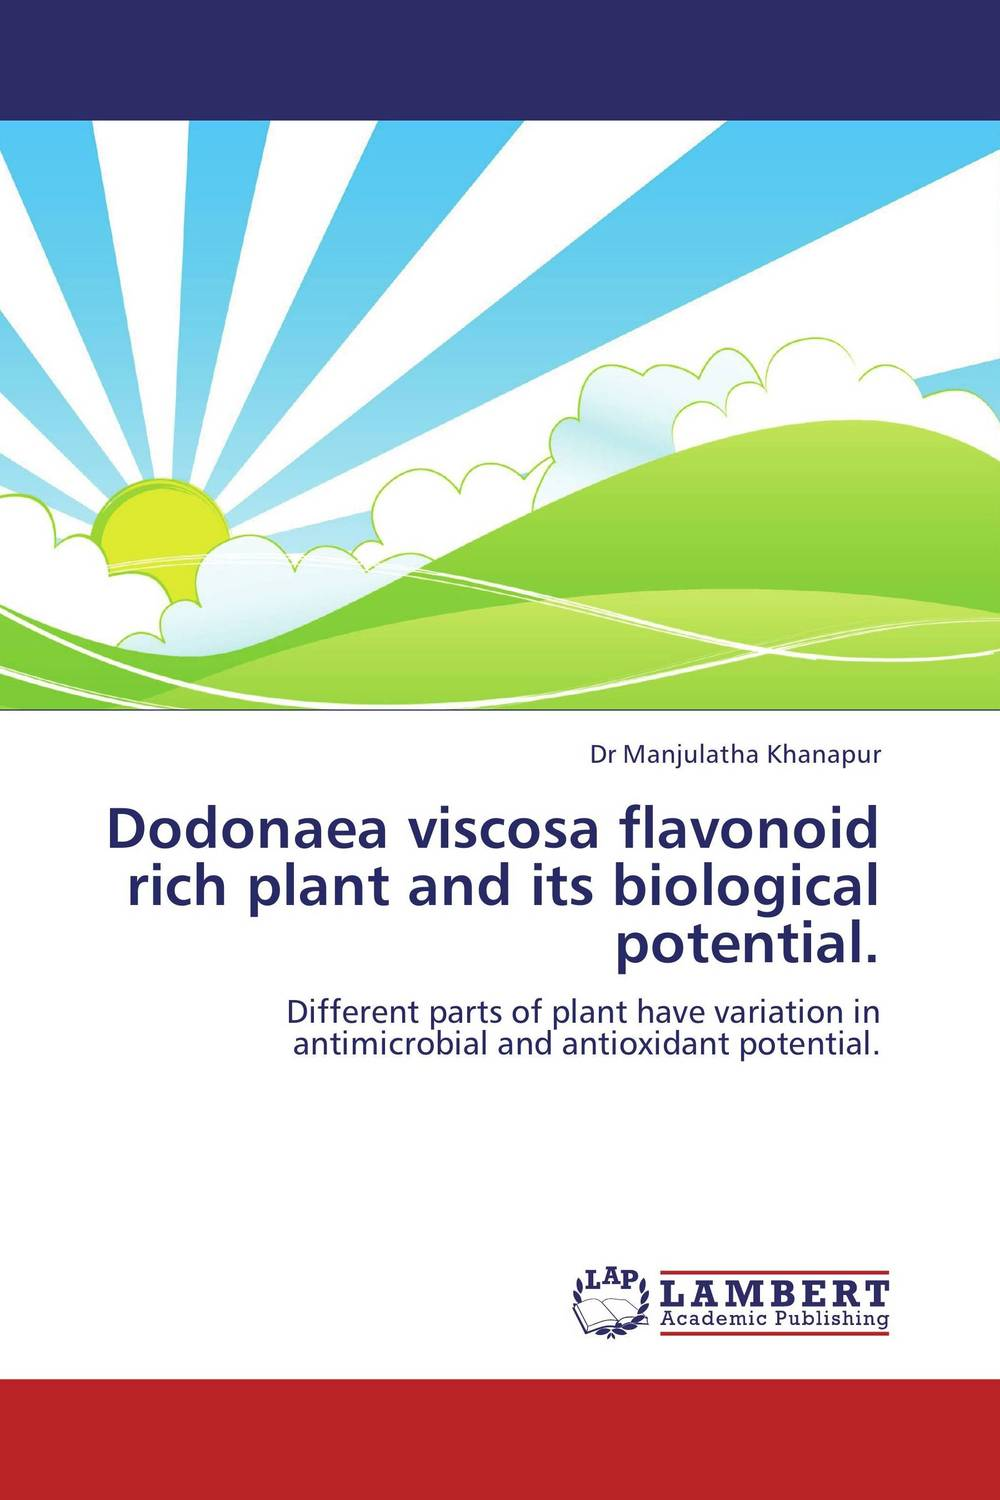 Dodonaea viscosa flavonoid rich plant and its biological potential. phytochemical investigation of the flavonoids